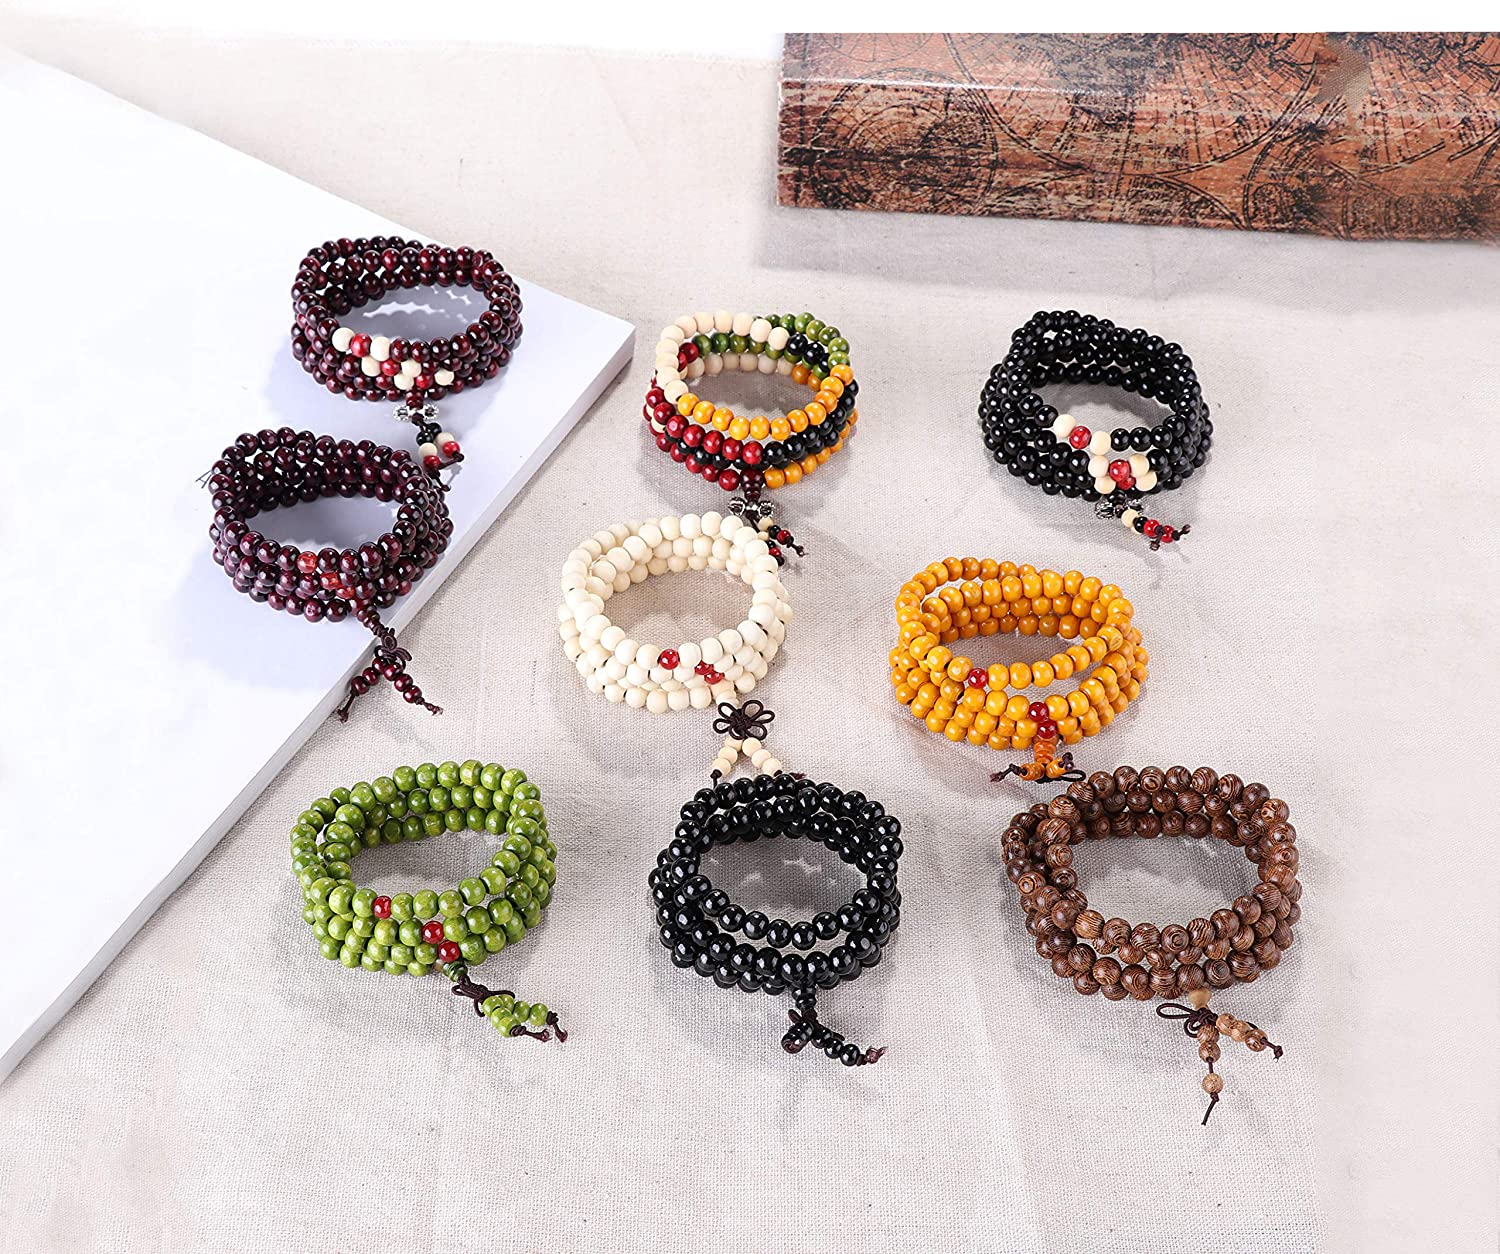 YADOCA 9 Pcs Bead Bracelet for Men Women 108 Mala Beads Bracelets Sandalwood Link Wrist Necklace 8mm Wood Bracelet for Men